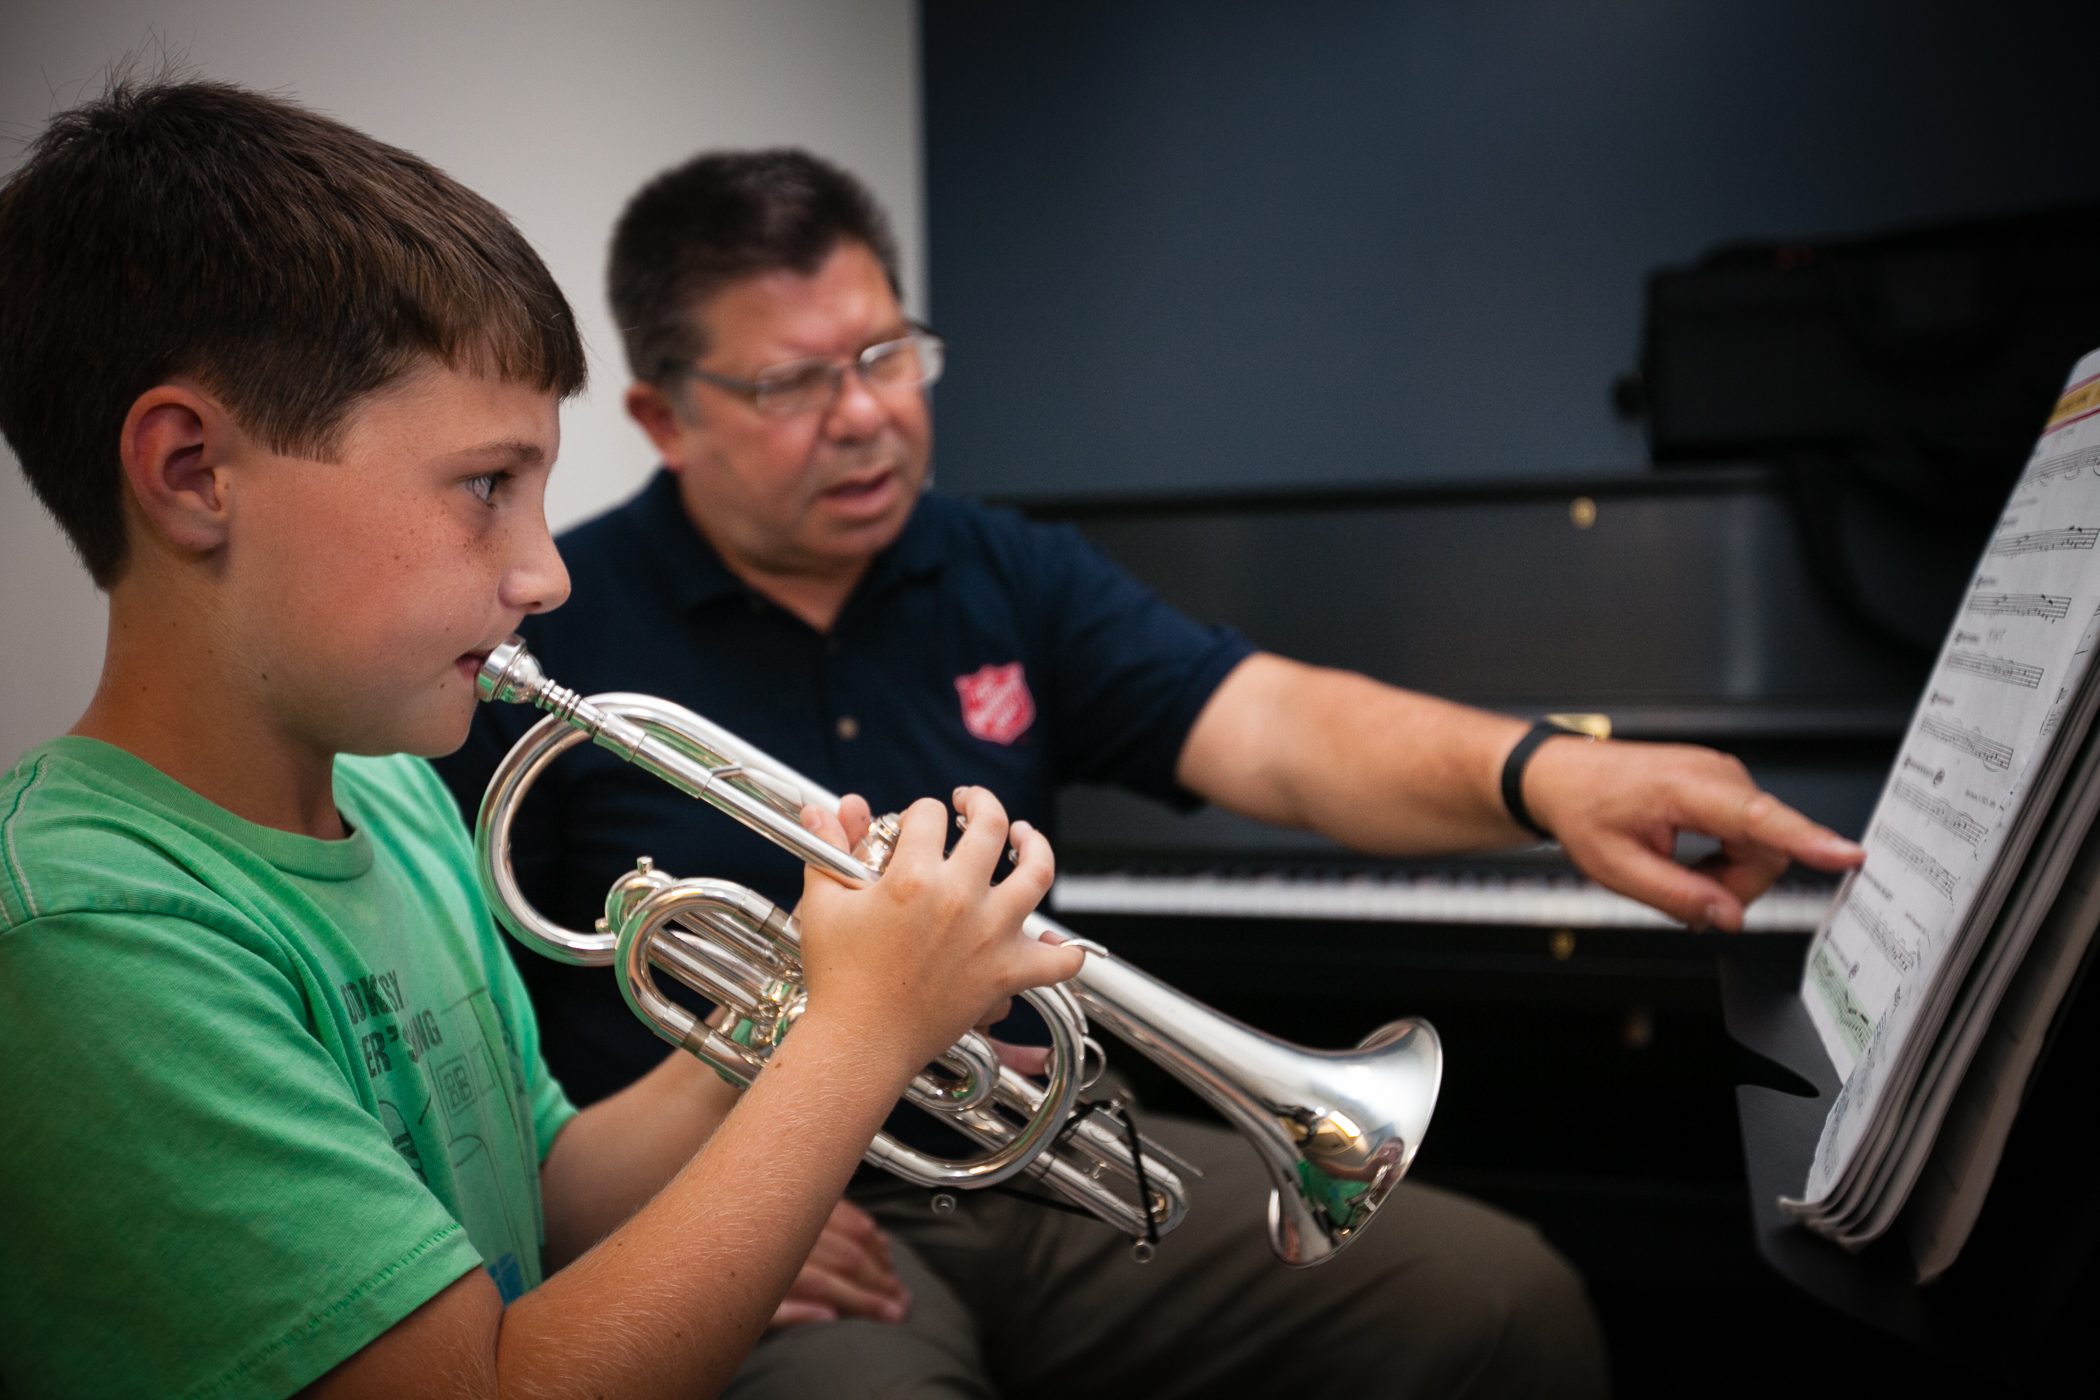 A welcoming Crescendo: The Salvation Army's $6 million new music center opens the world of music to kids